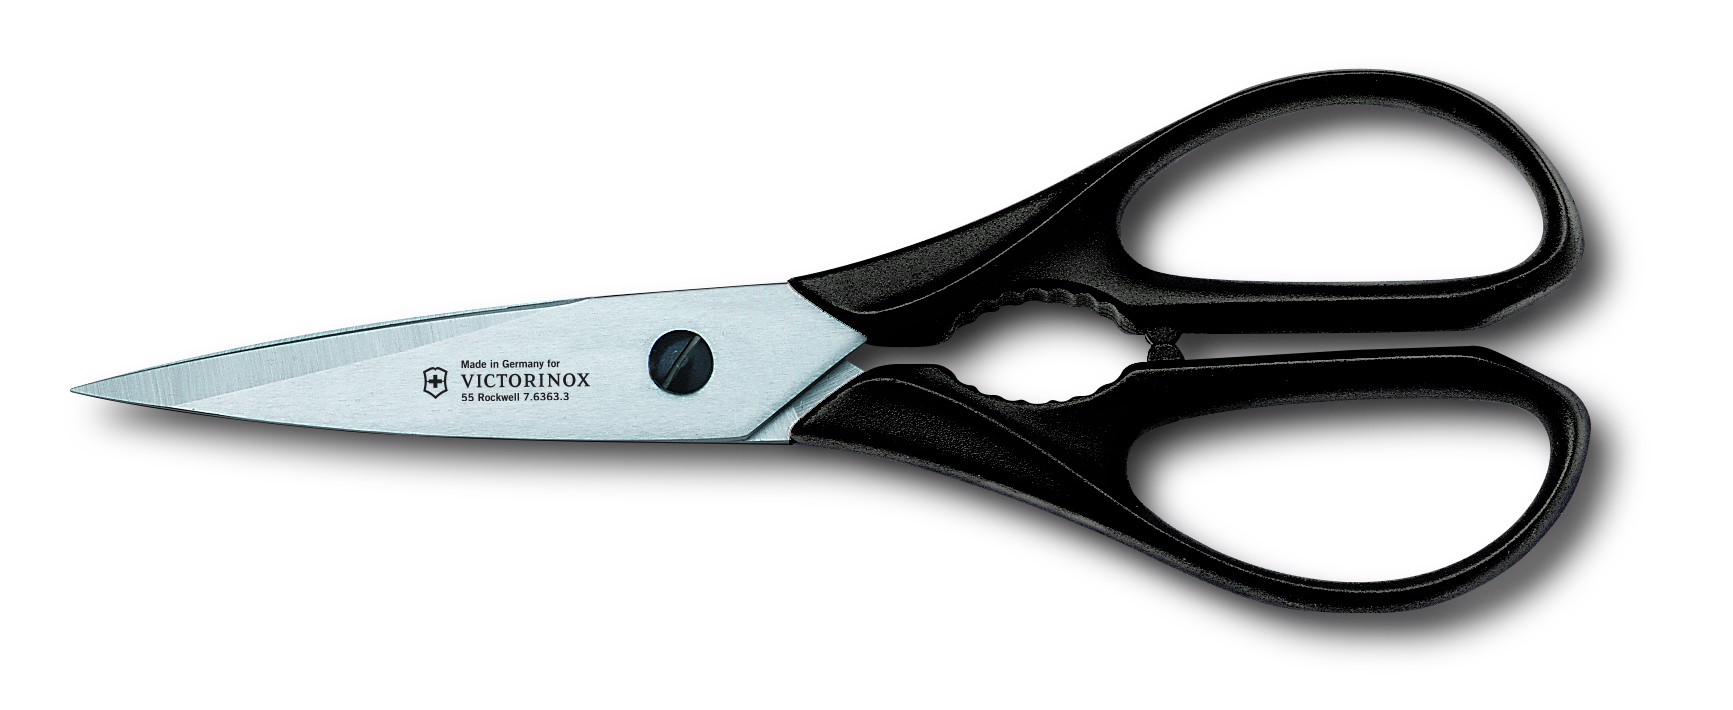 Multipurpose Kitchen Shears